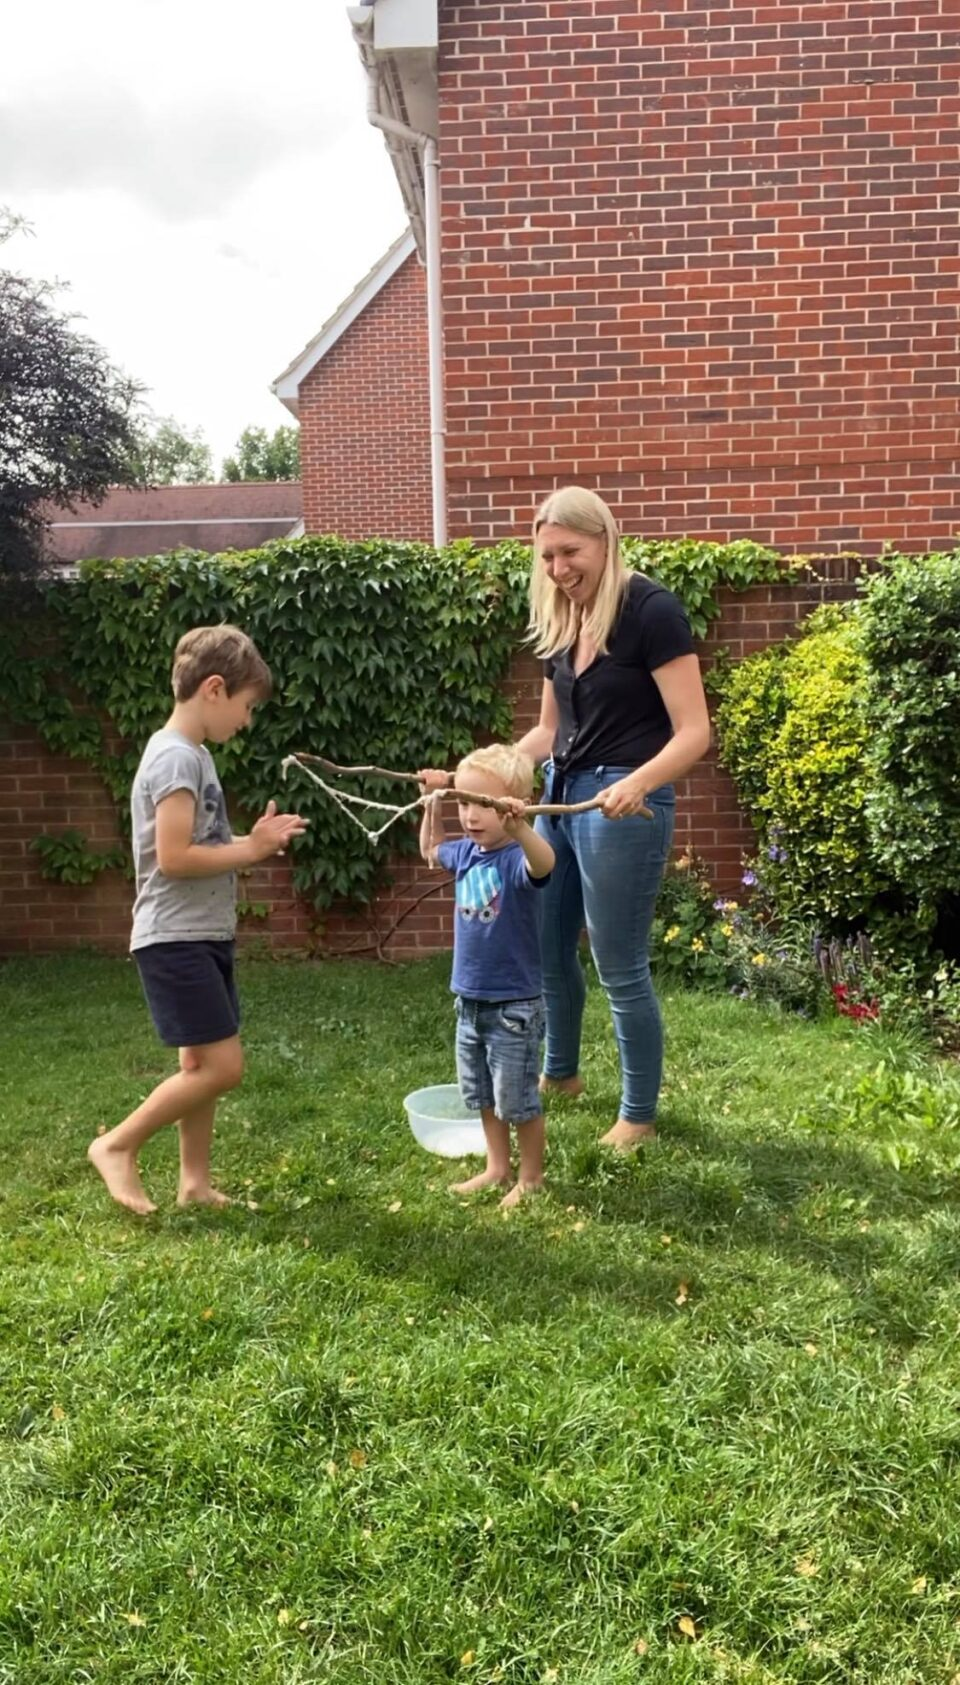 william having a go at making bubbles